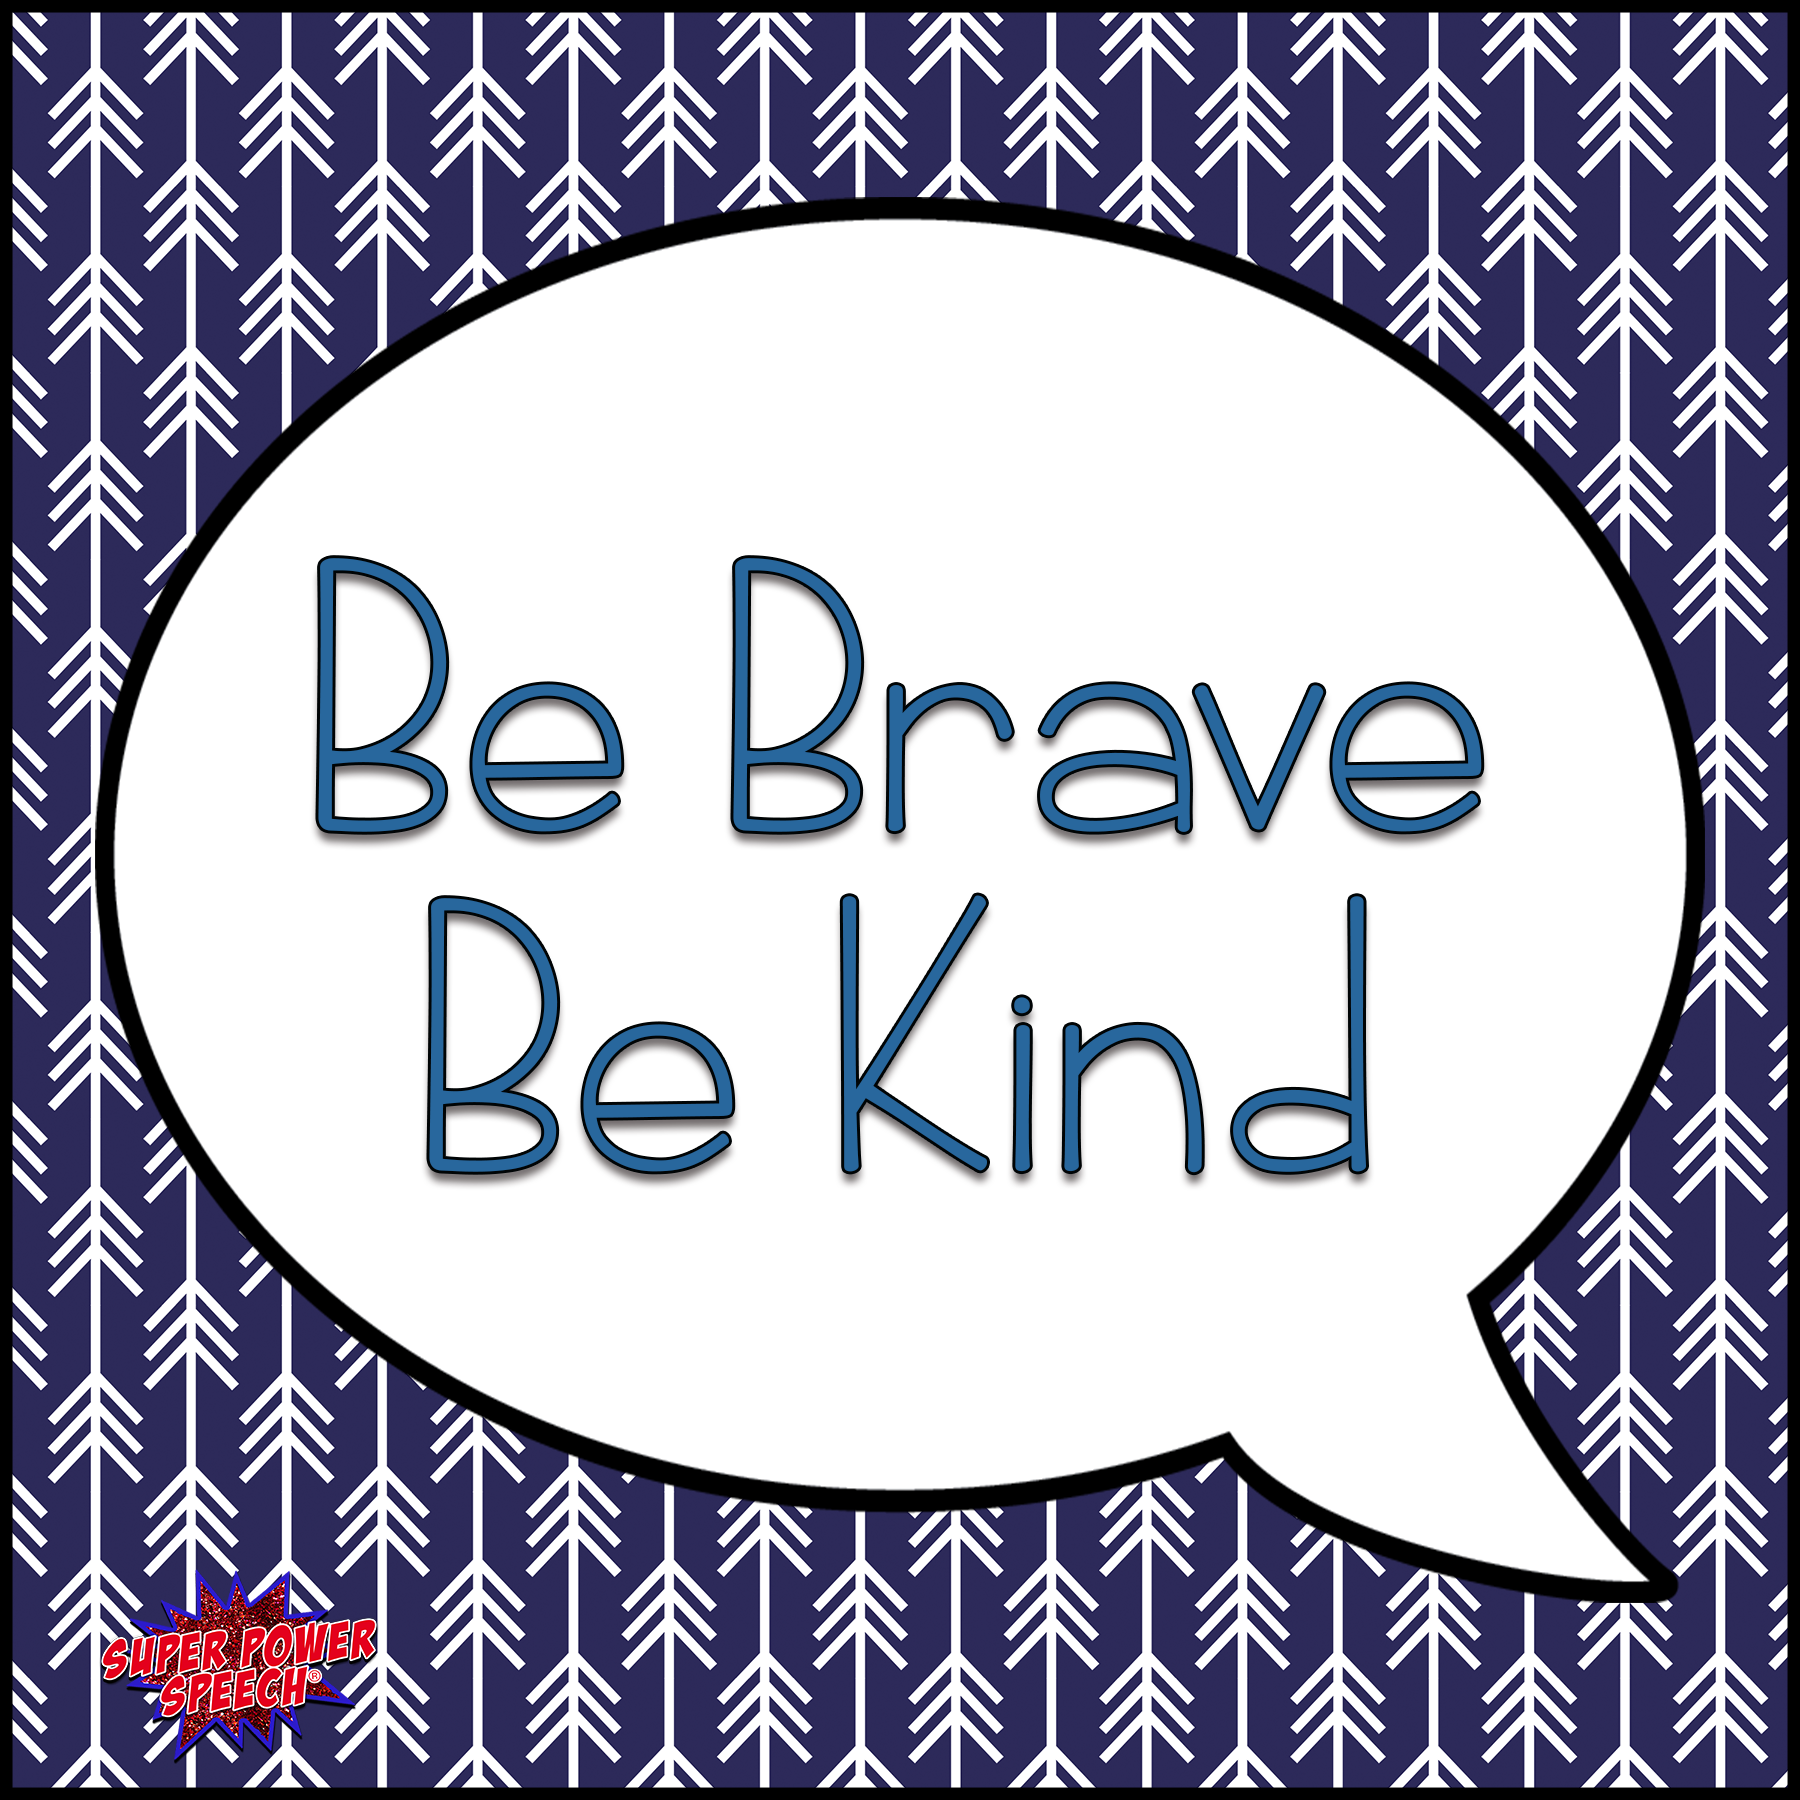 Be brave and be kind. Every day.